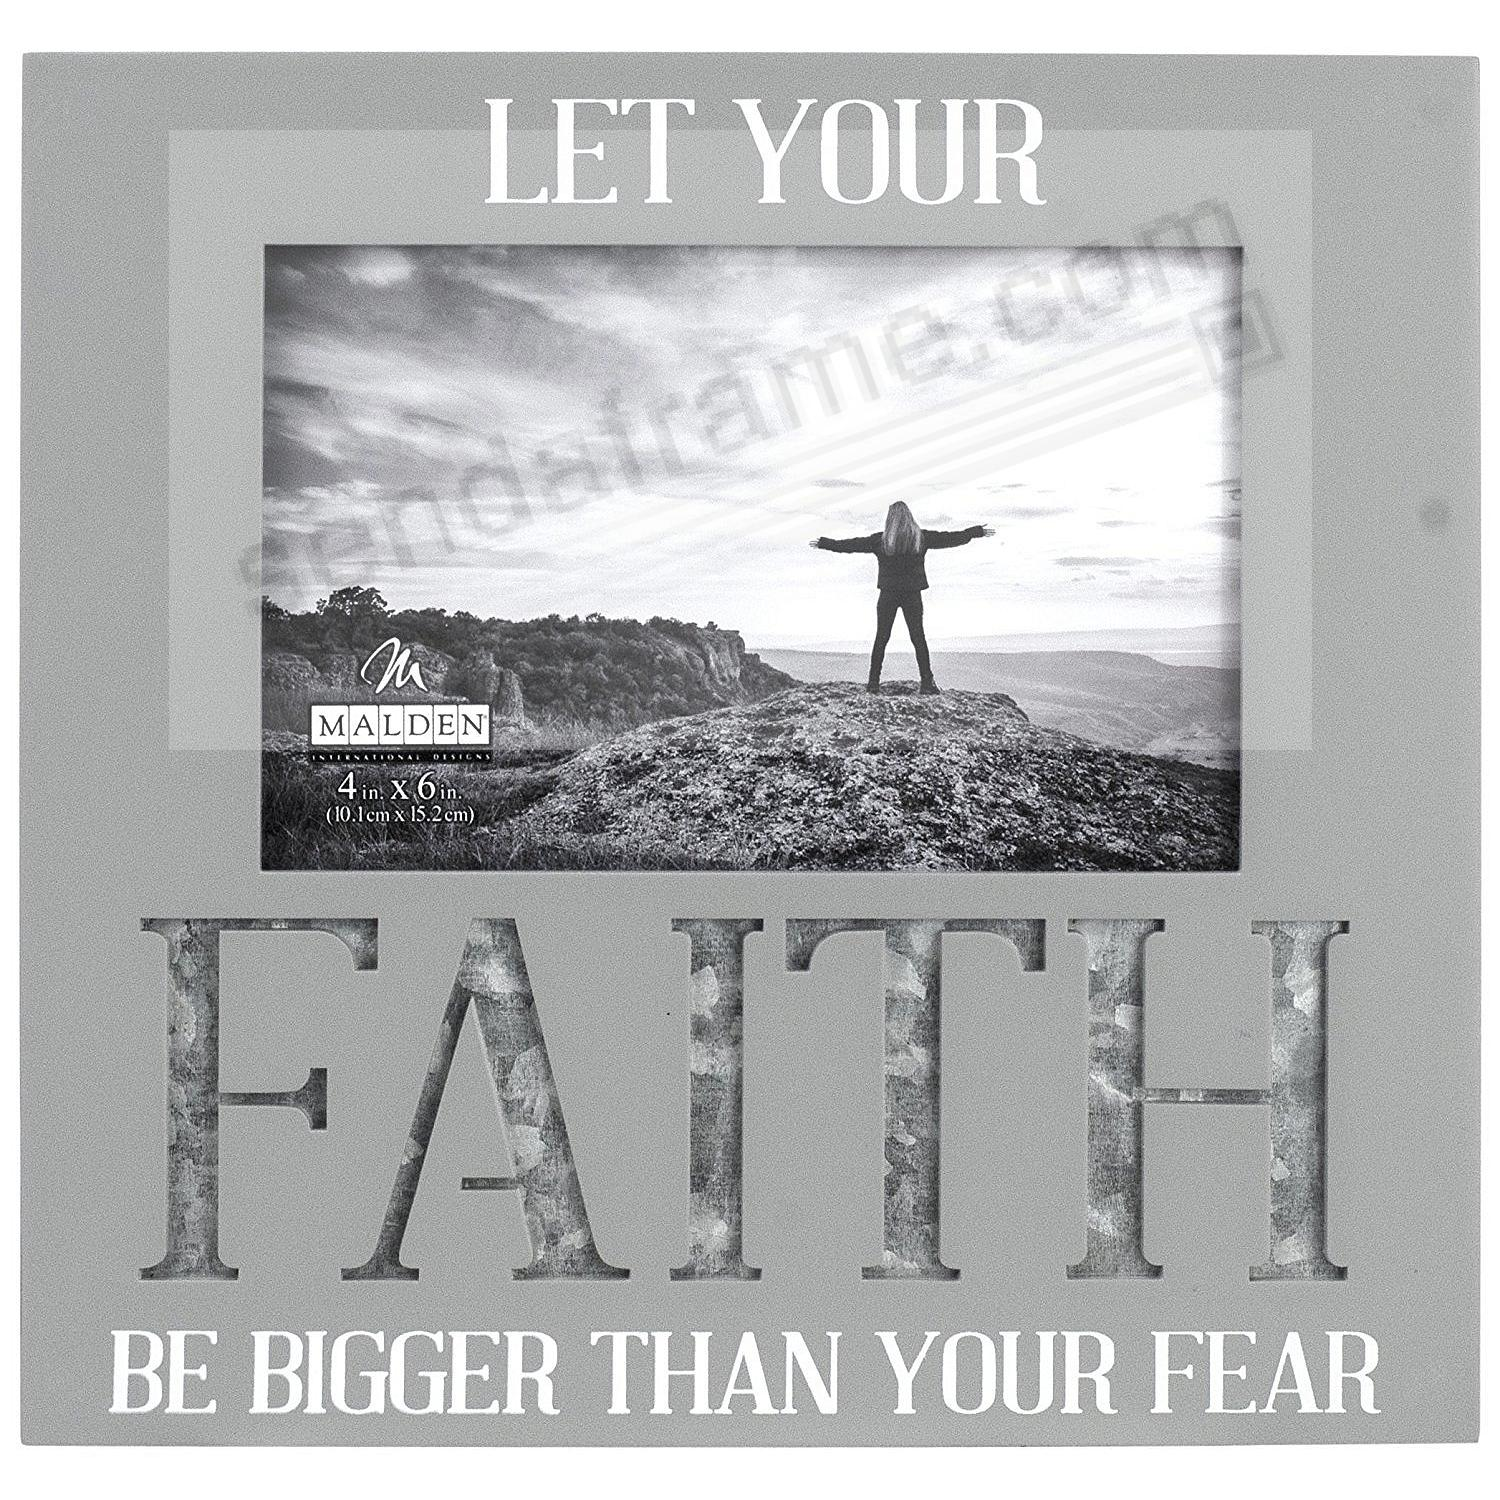 LET YOUR FAITH BE BIGGER THAN YOUR FEAR by Malden®